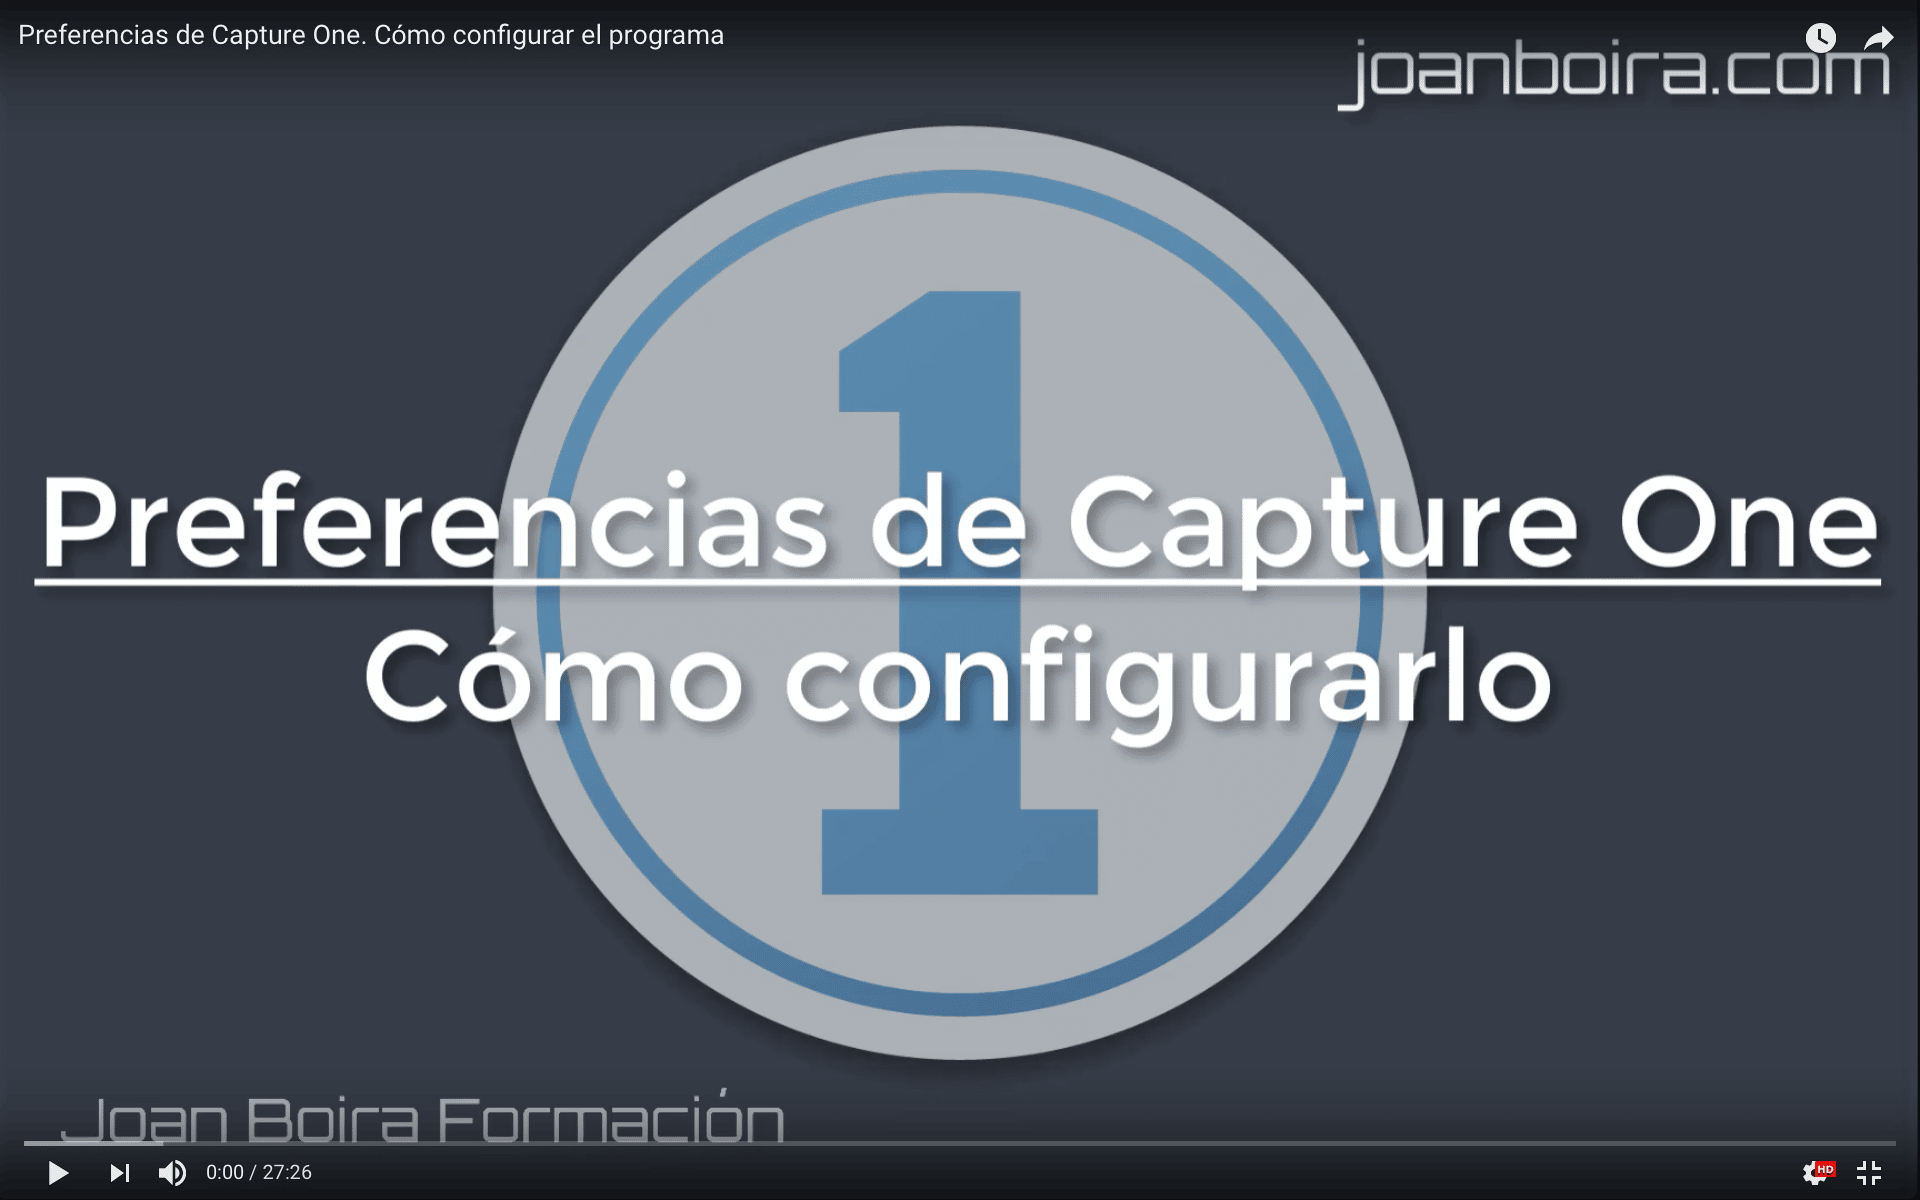 Preferencias de Capture One. Cómo configurar el programa